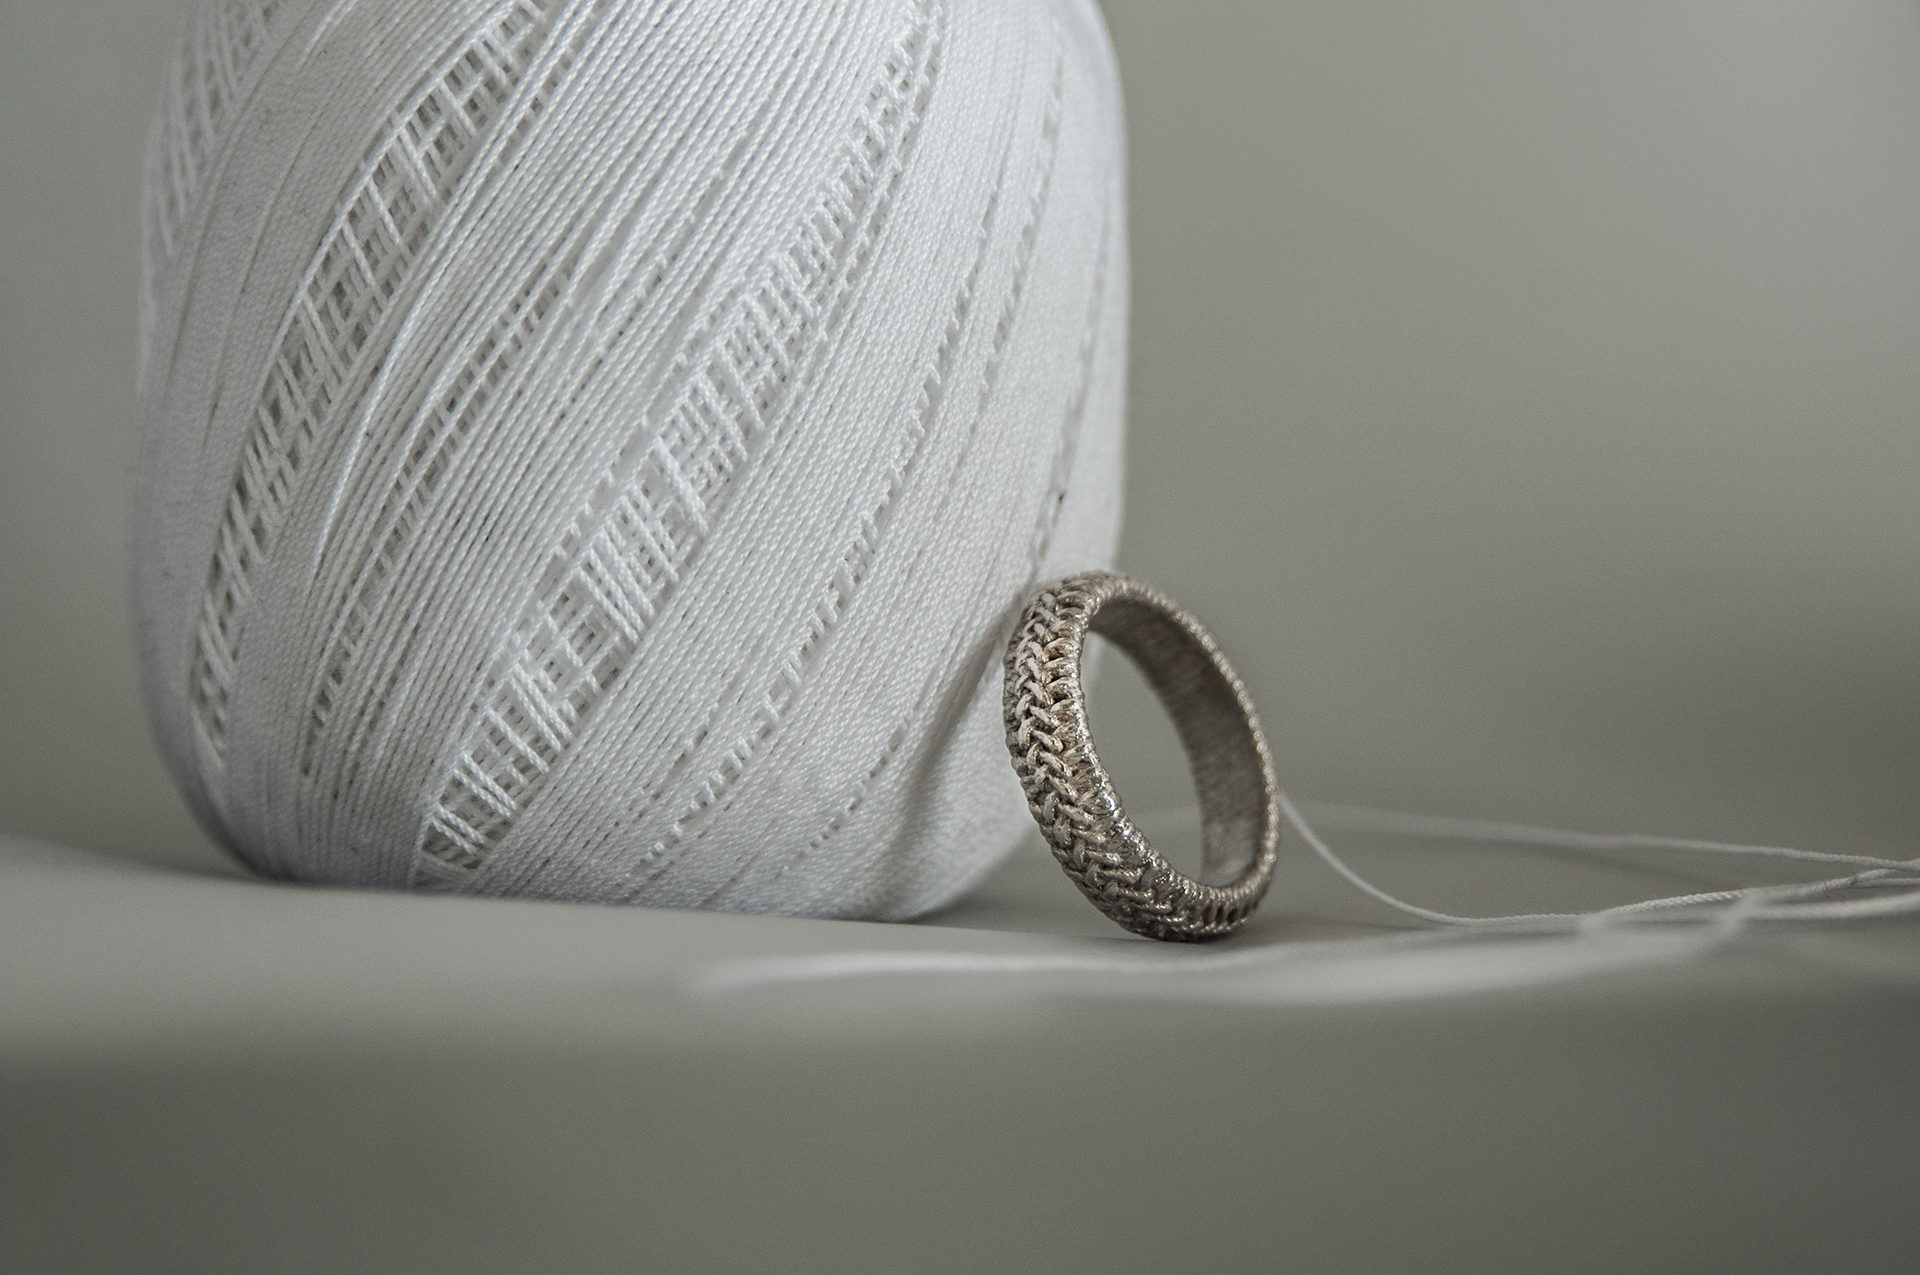 knitted zopfring in silber cotton rings fastgefaehrlich com web plait silver ring portfolio en